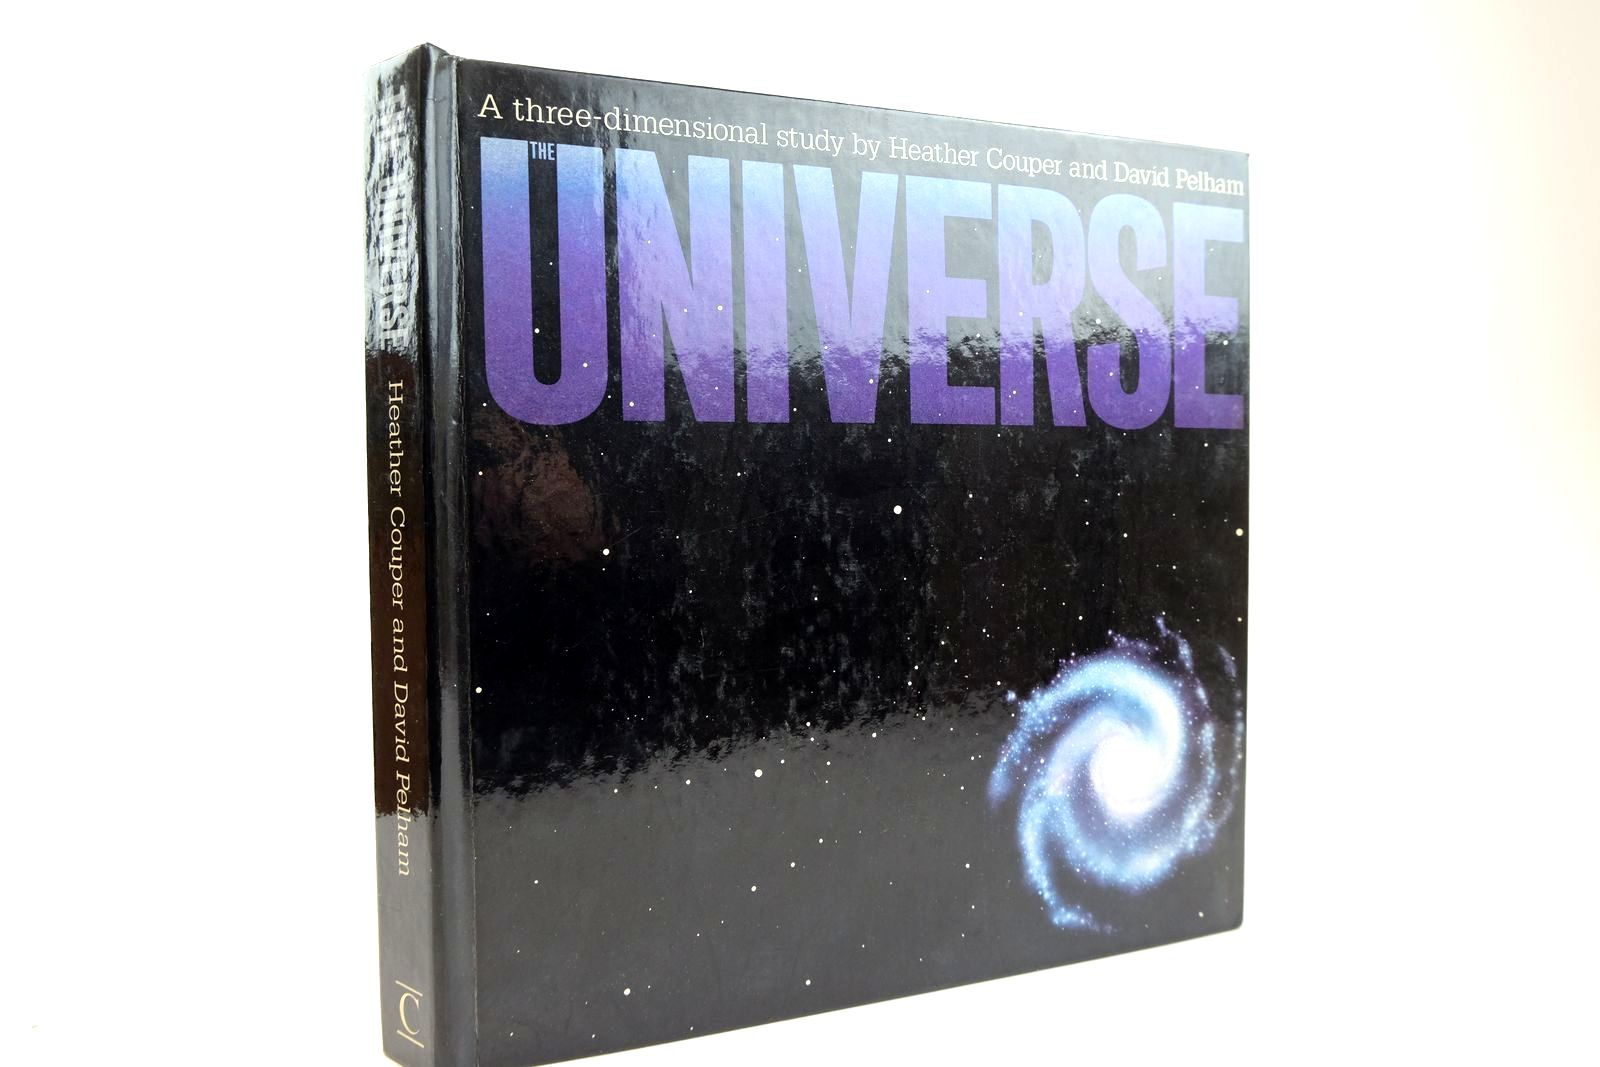 Photo of THE UNIVERSE A THREE-DIMENSIONAL STUDY written by Couper, Heather Pelham, David illustrated by Willock, Harry published by Century Publishing (STOCK CODE: 2132526)  for sale by Stella & Rose's Books